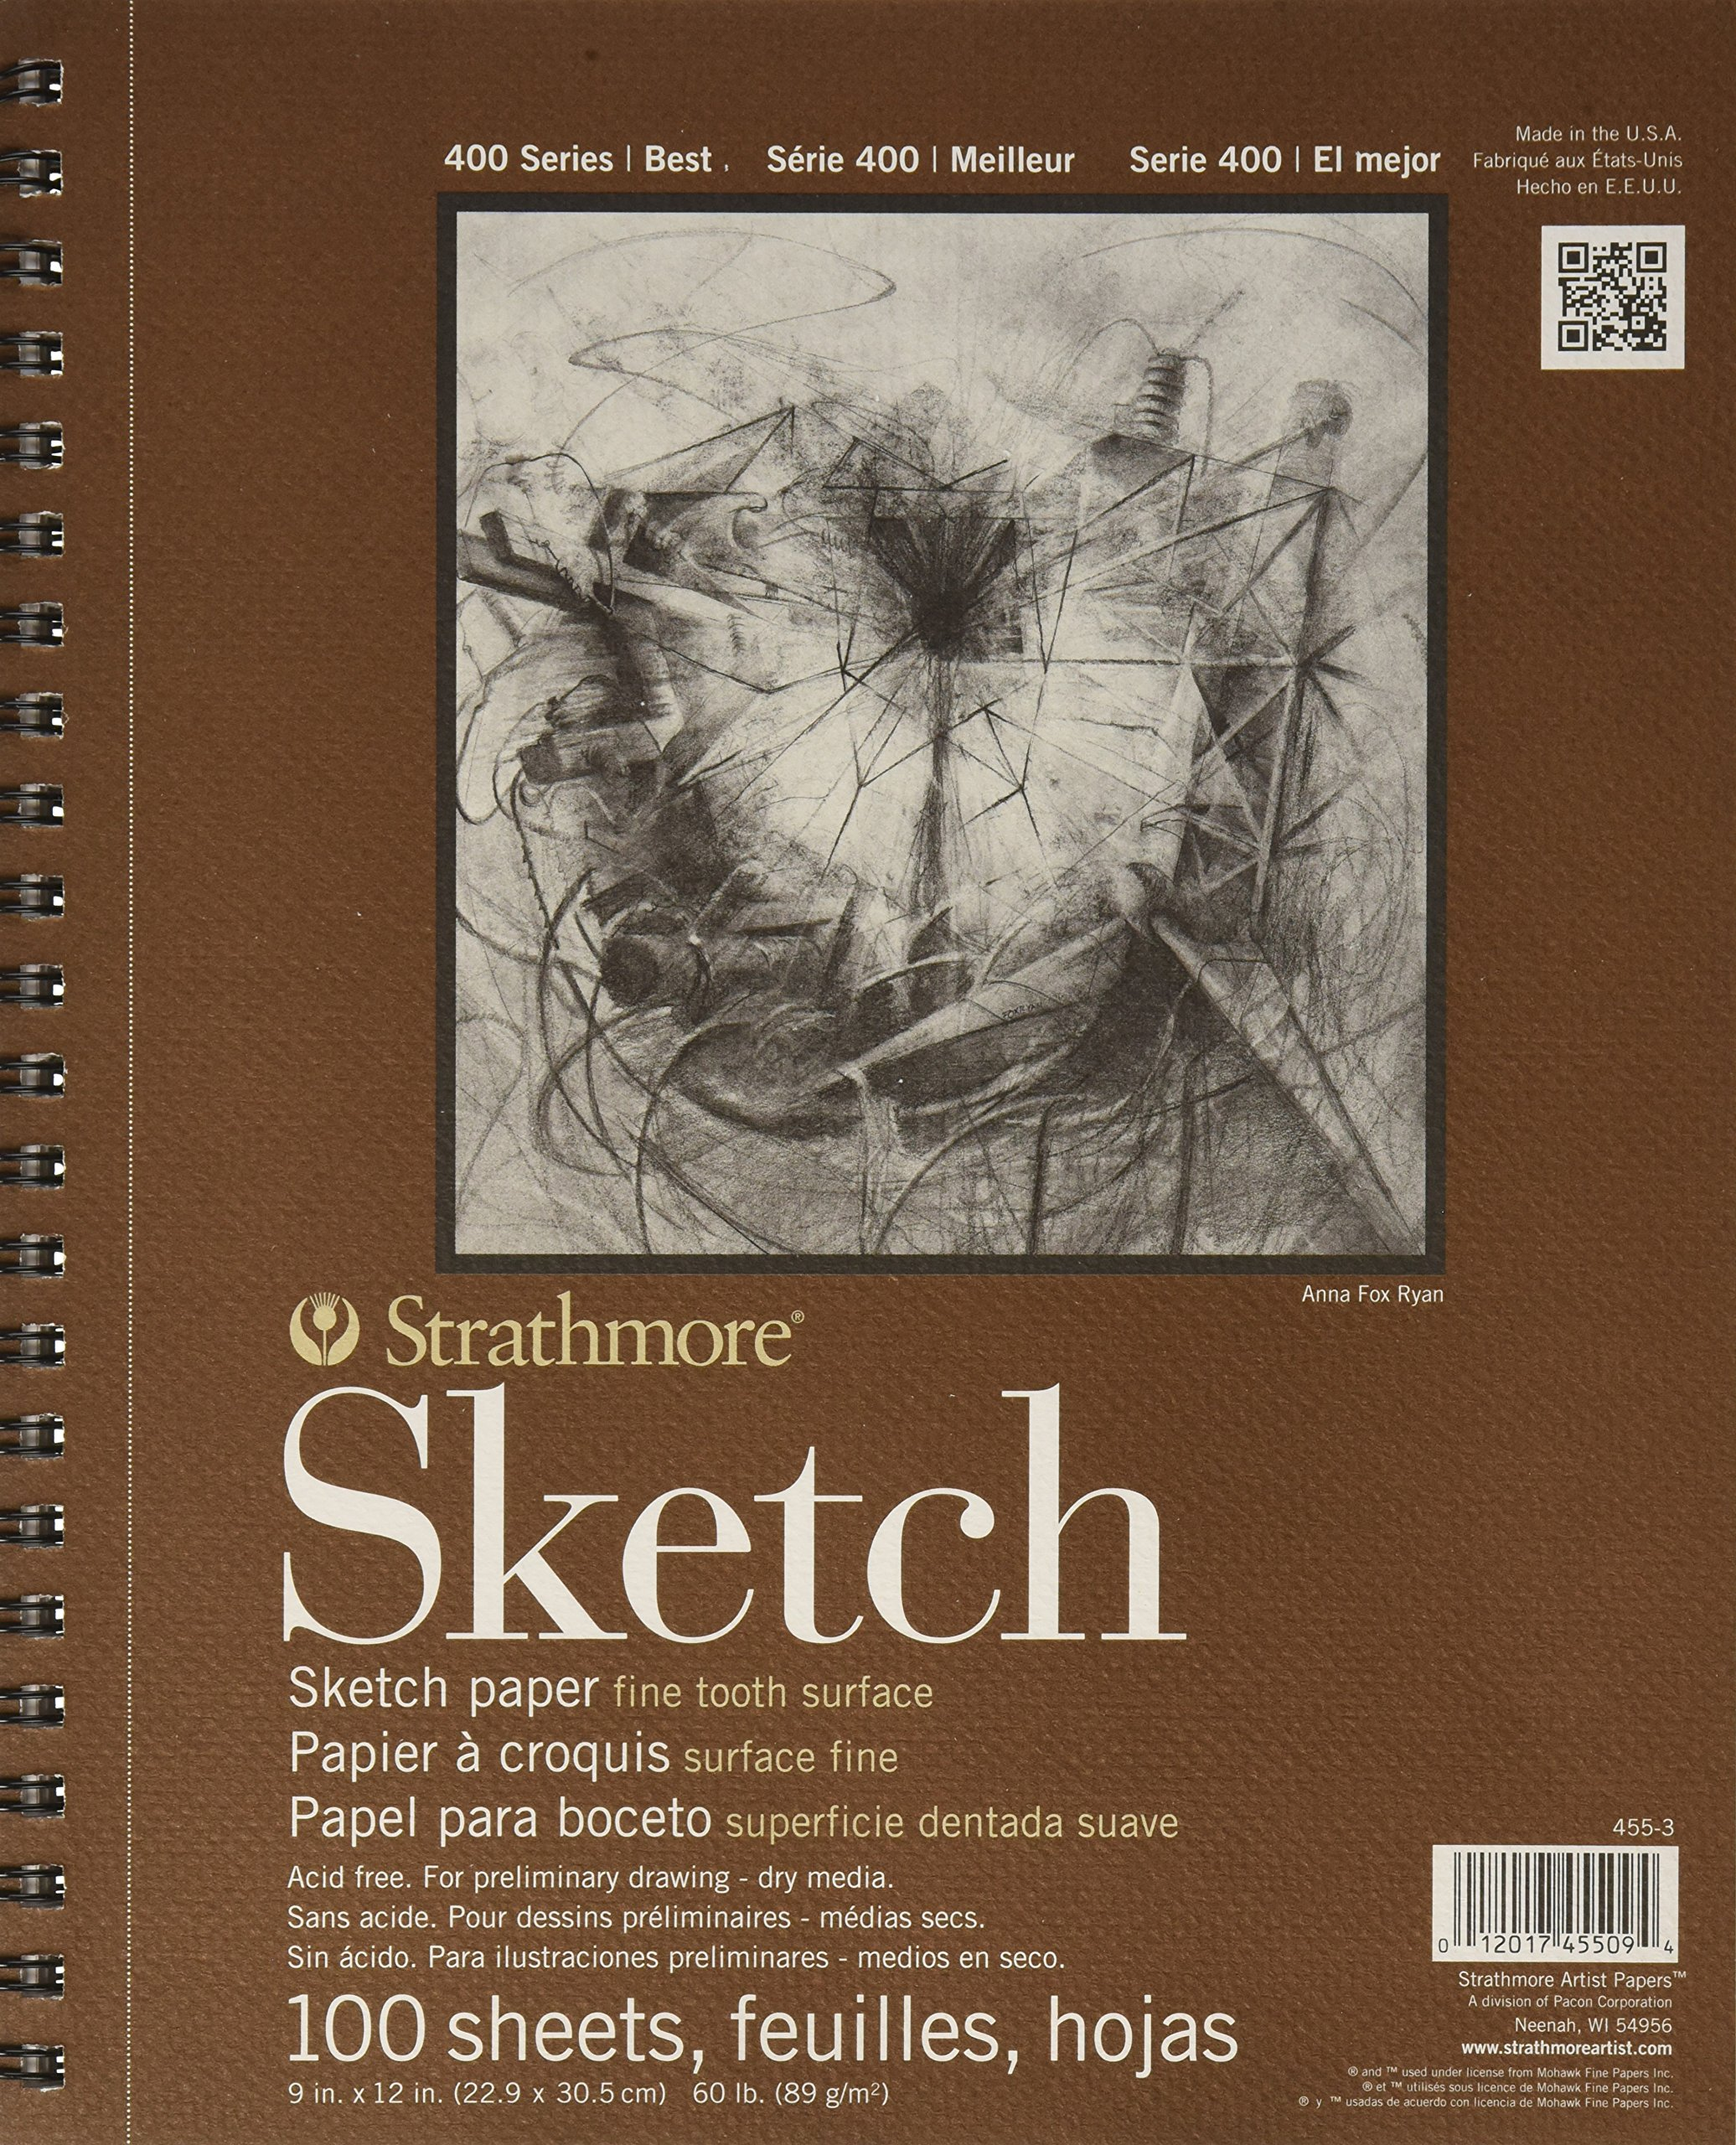 Strathmore Series 400 Sketch Pads 9 In. X 12 In. - 2 pack - 100 Pgs Each by Strathmore